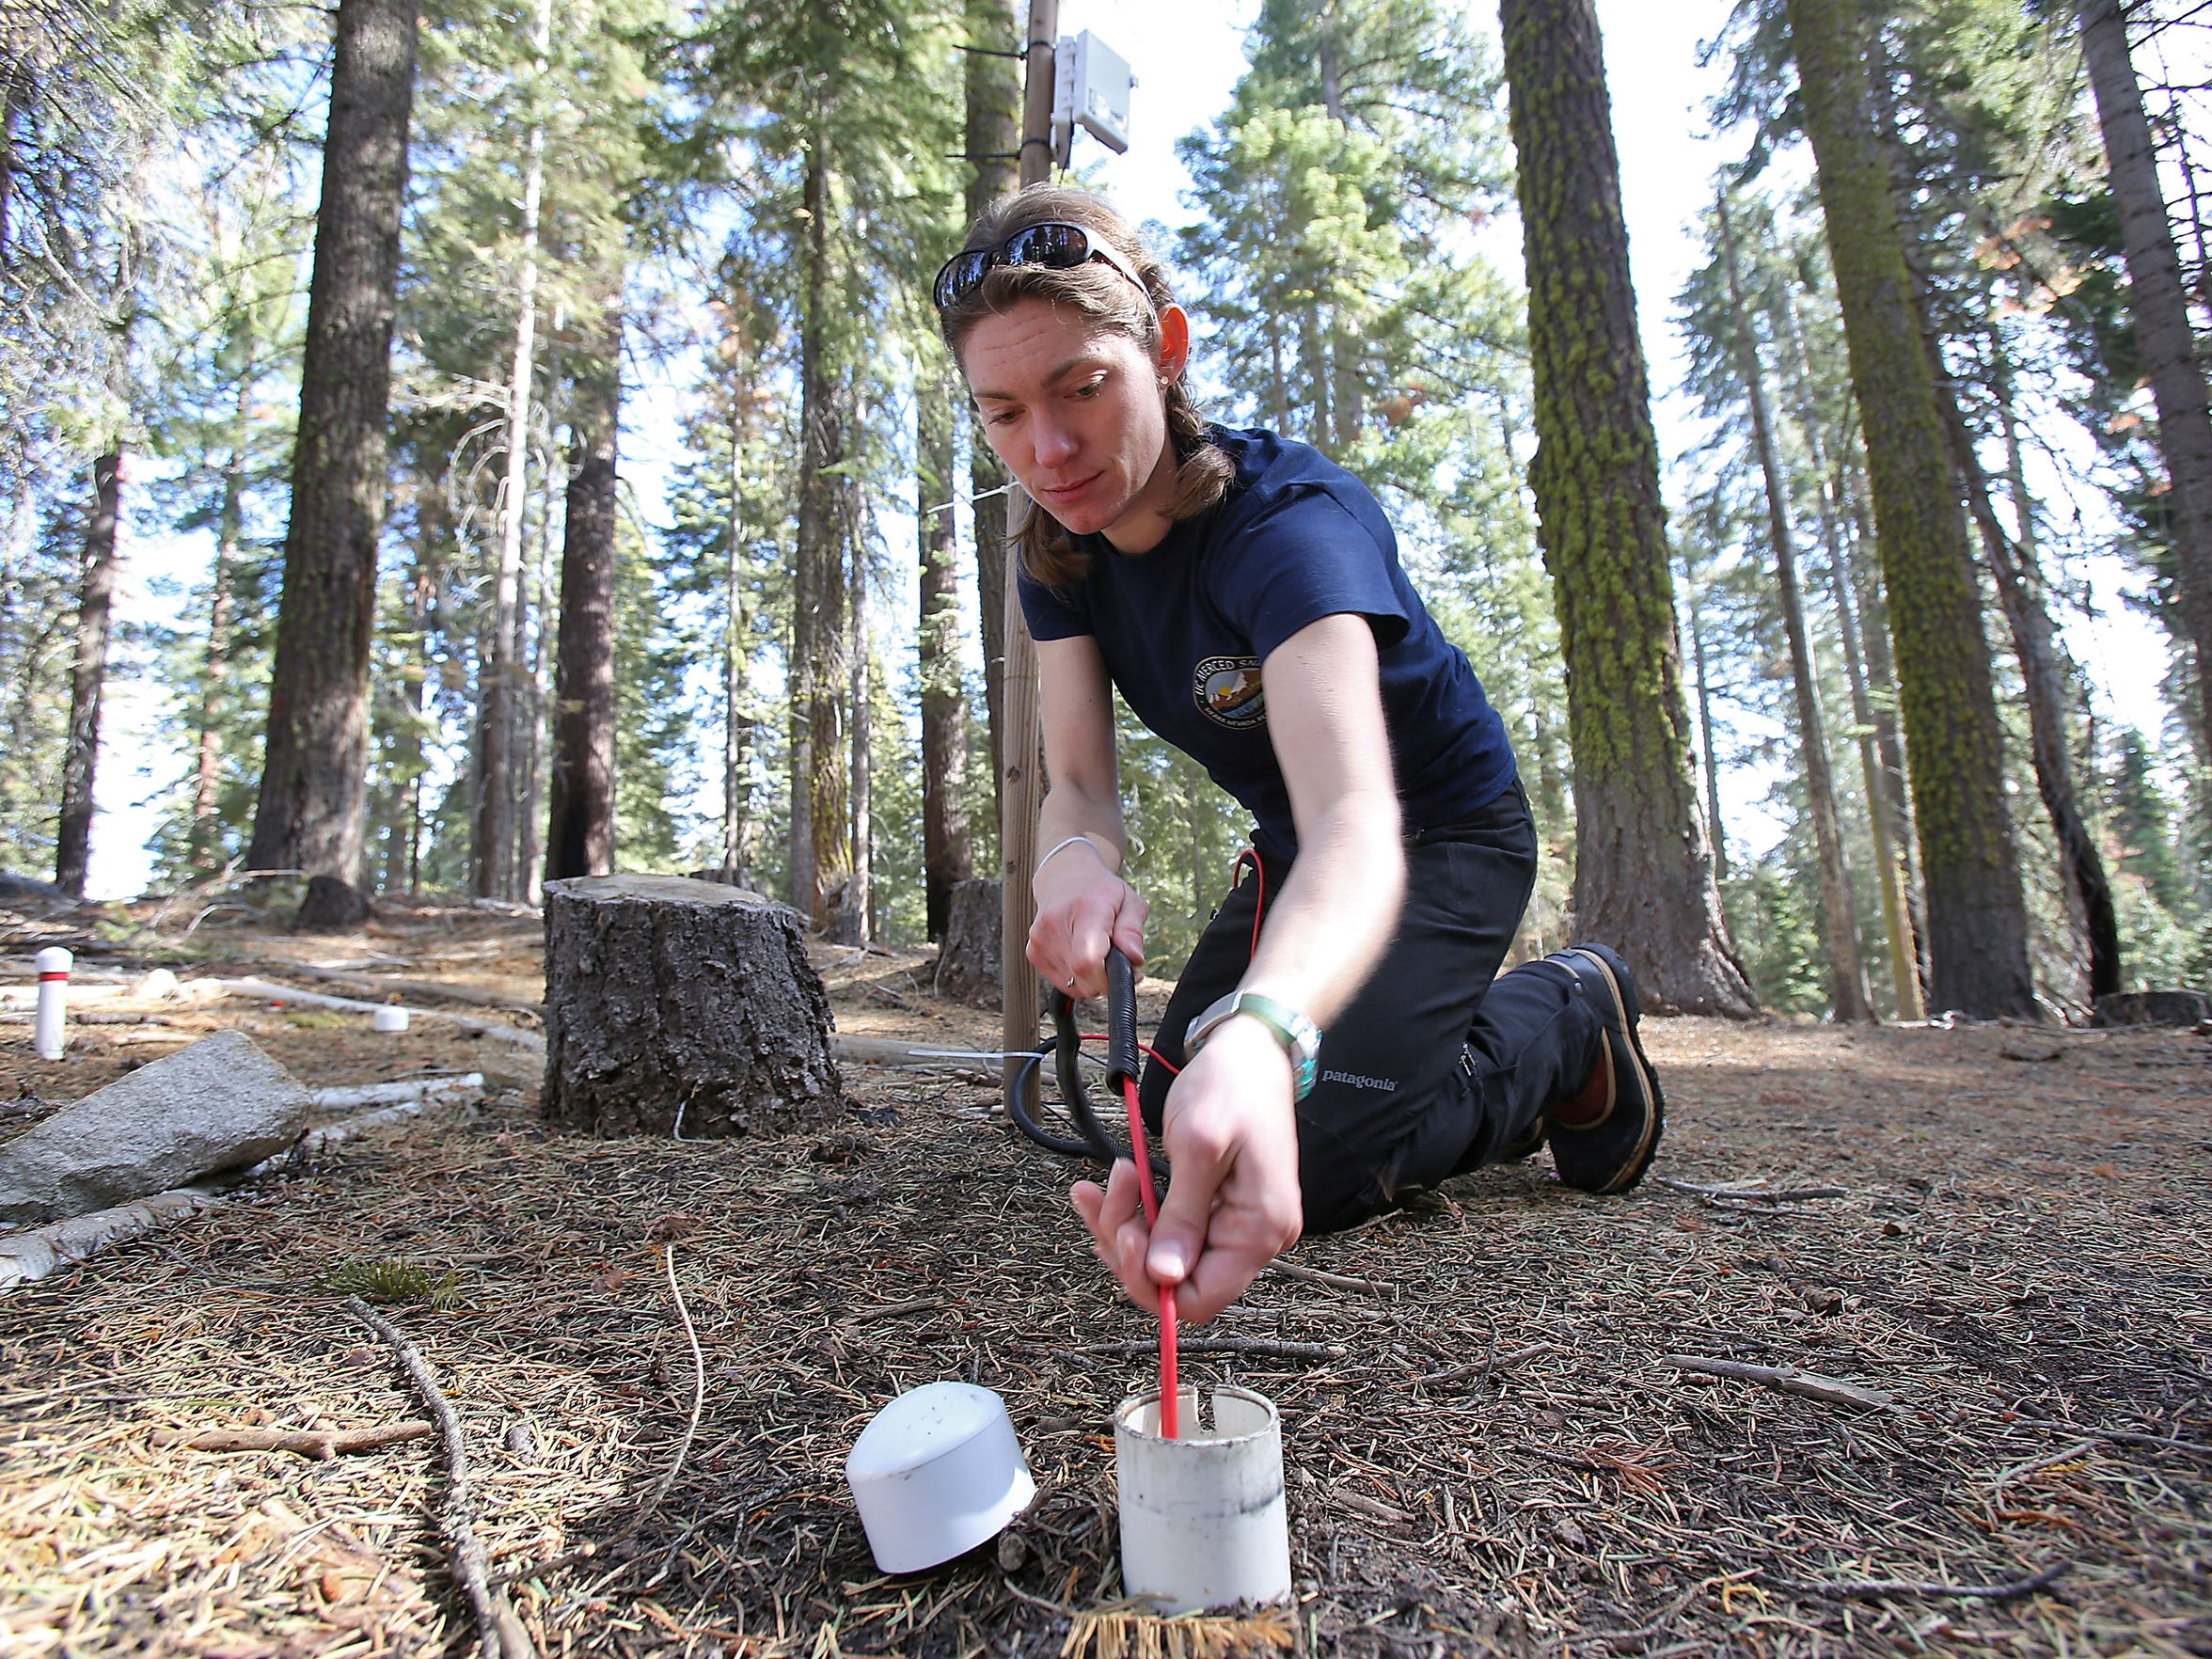 Erin Stacy, a scientist with the Sierra Nevada Research Institute at the University of California, Merced, manages research sites where instruments record information about the snowpack, water and the ecology of the forest.